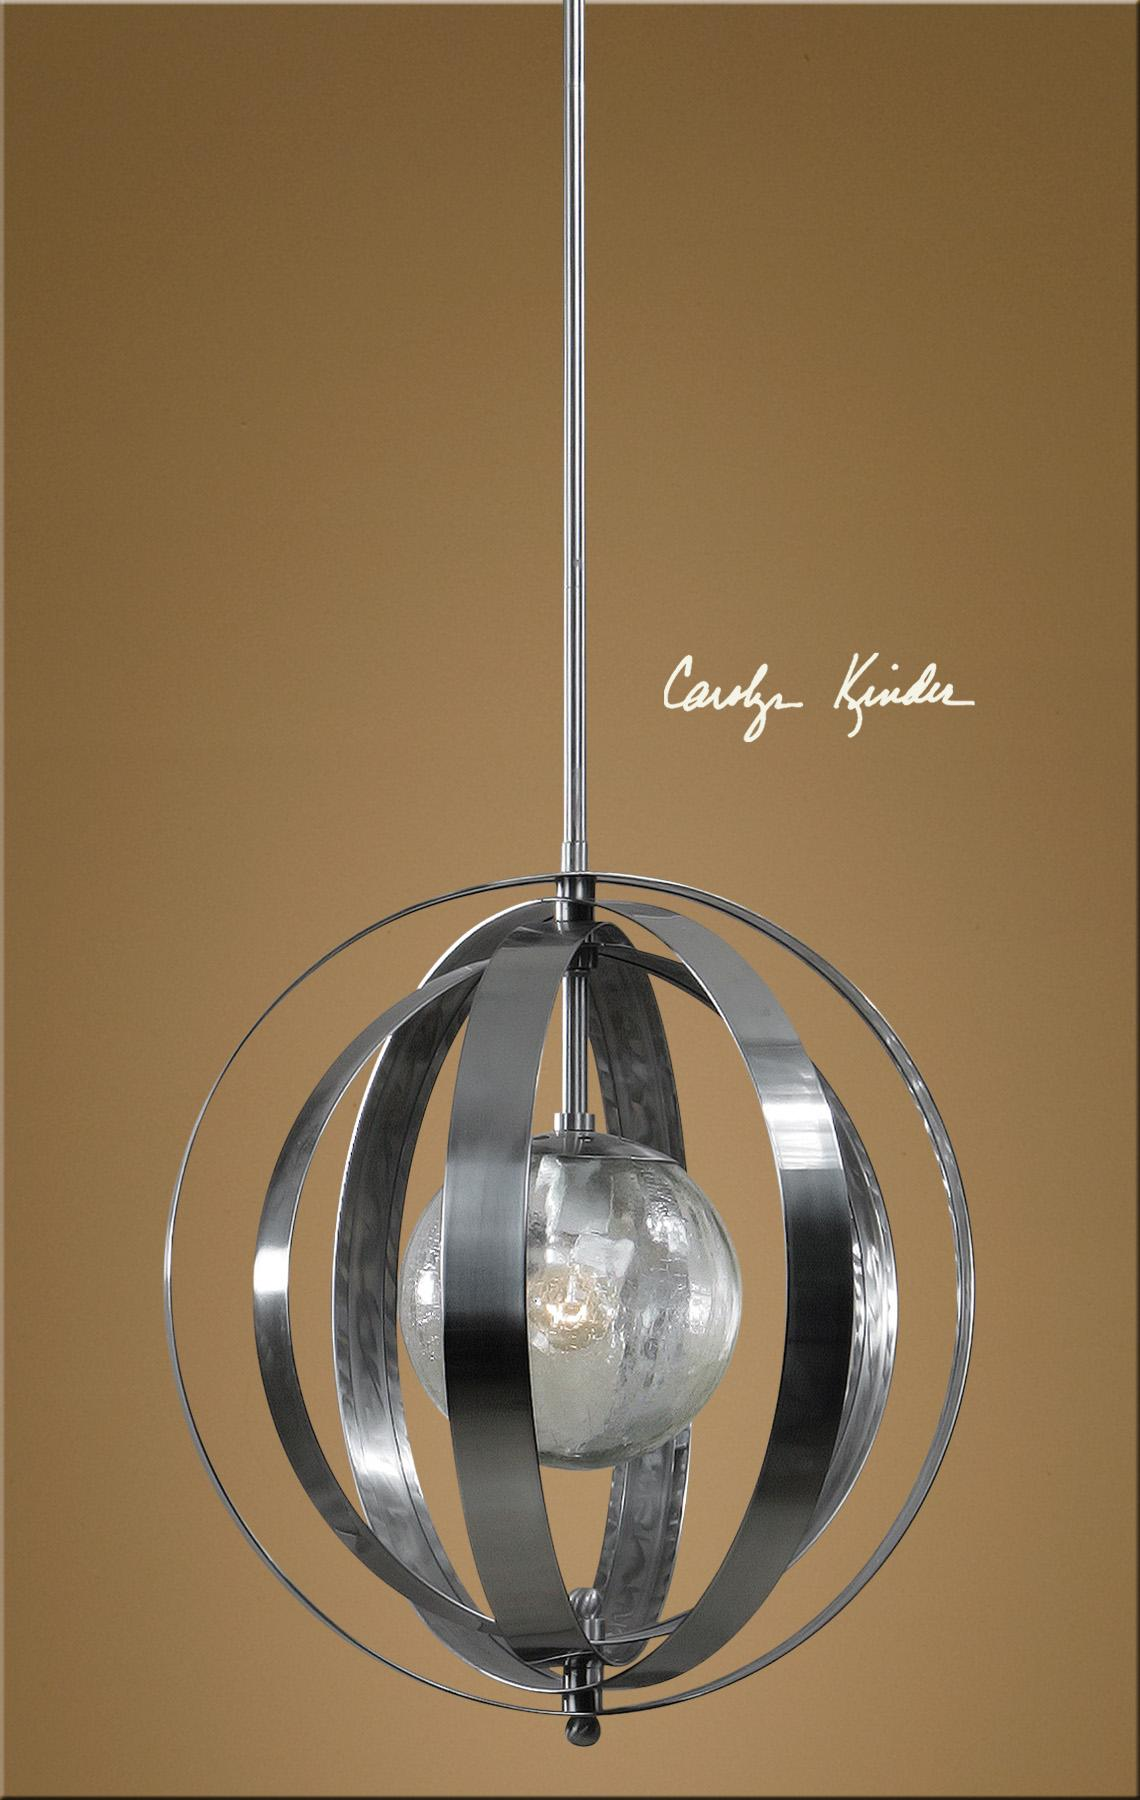 Uttermost Lighting Fixtures Trofarello Silver 1 Light Pendant - Item Number: 21938